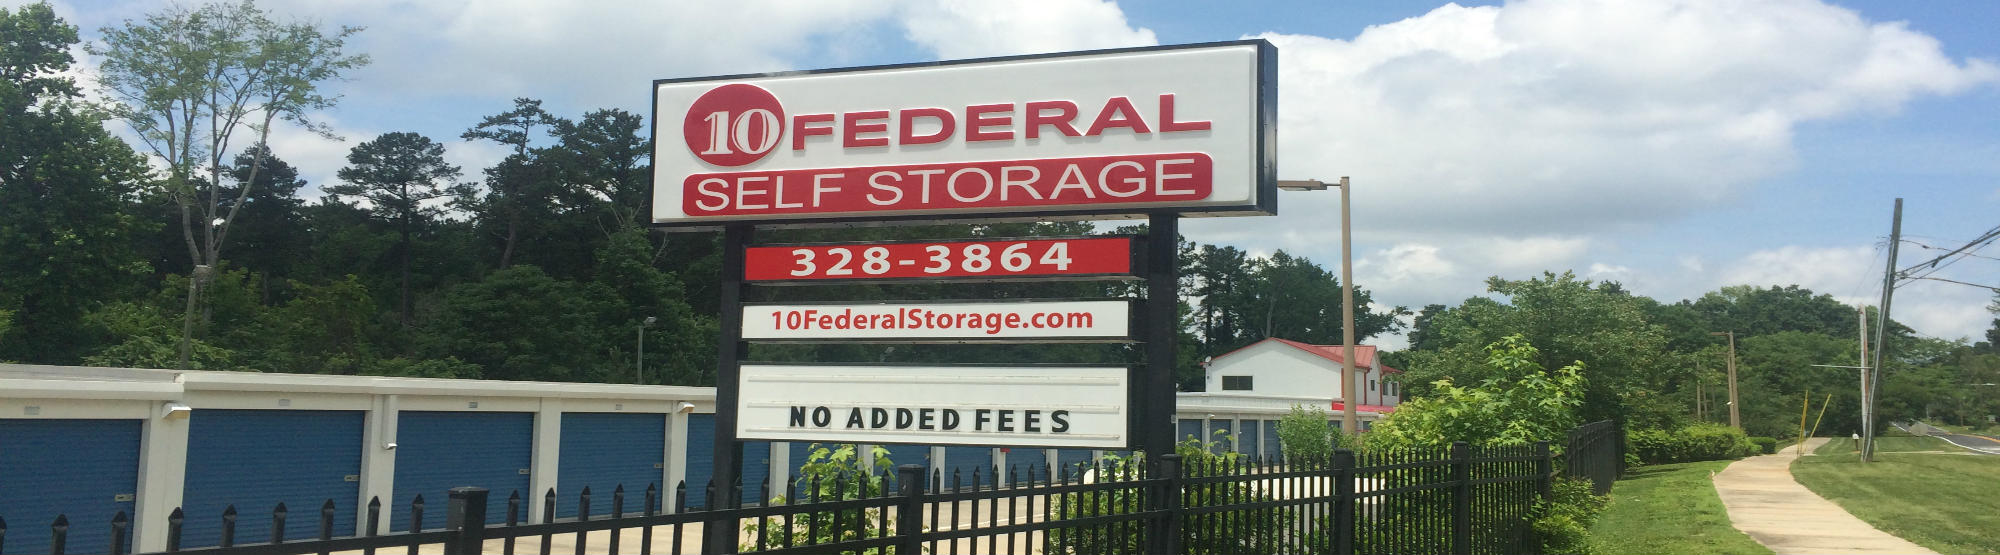 Self Storage In Central Nc 10 Federal Storage Llc